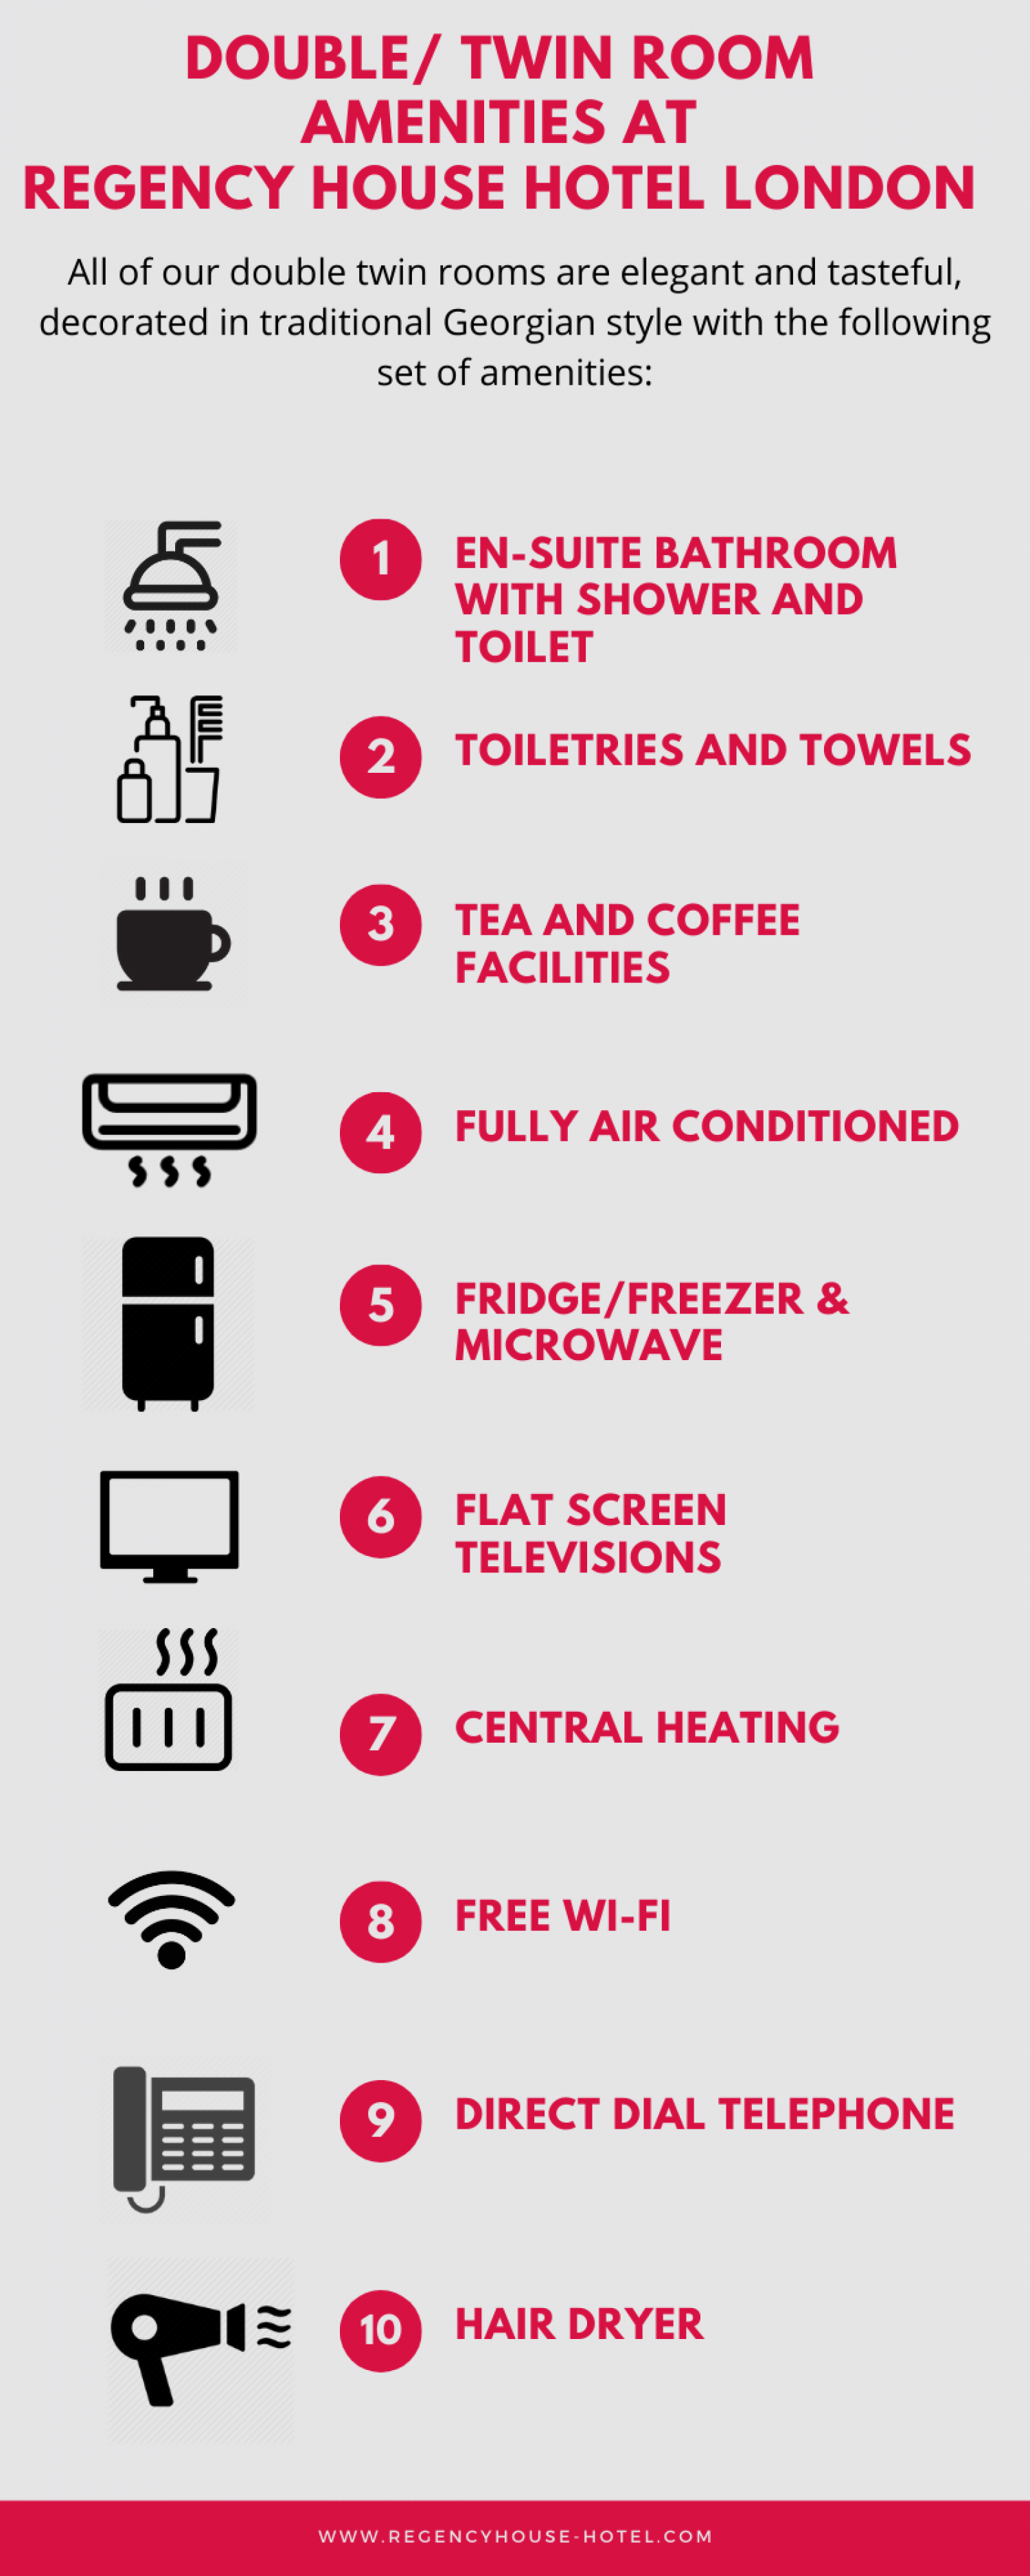 Double/ Twin Room Amenities at Regency House hotel London Infographic